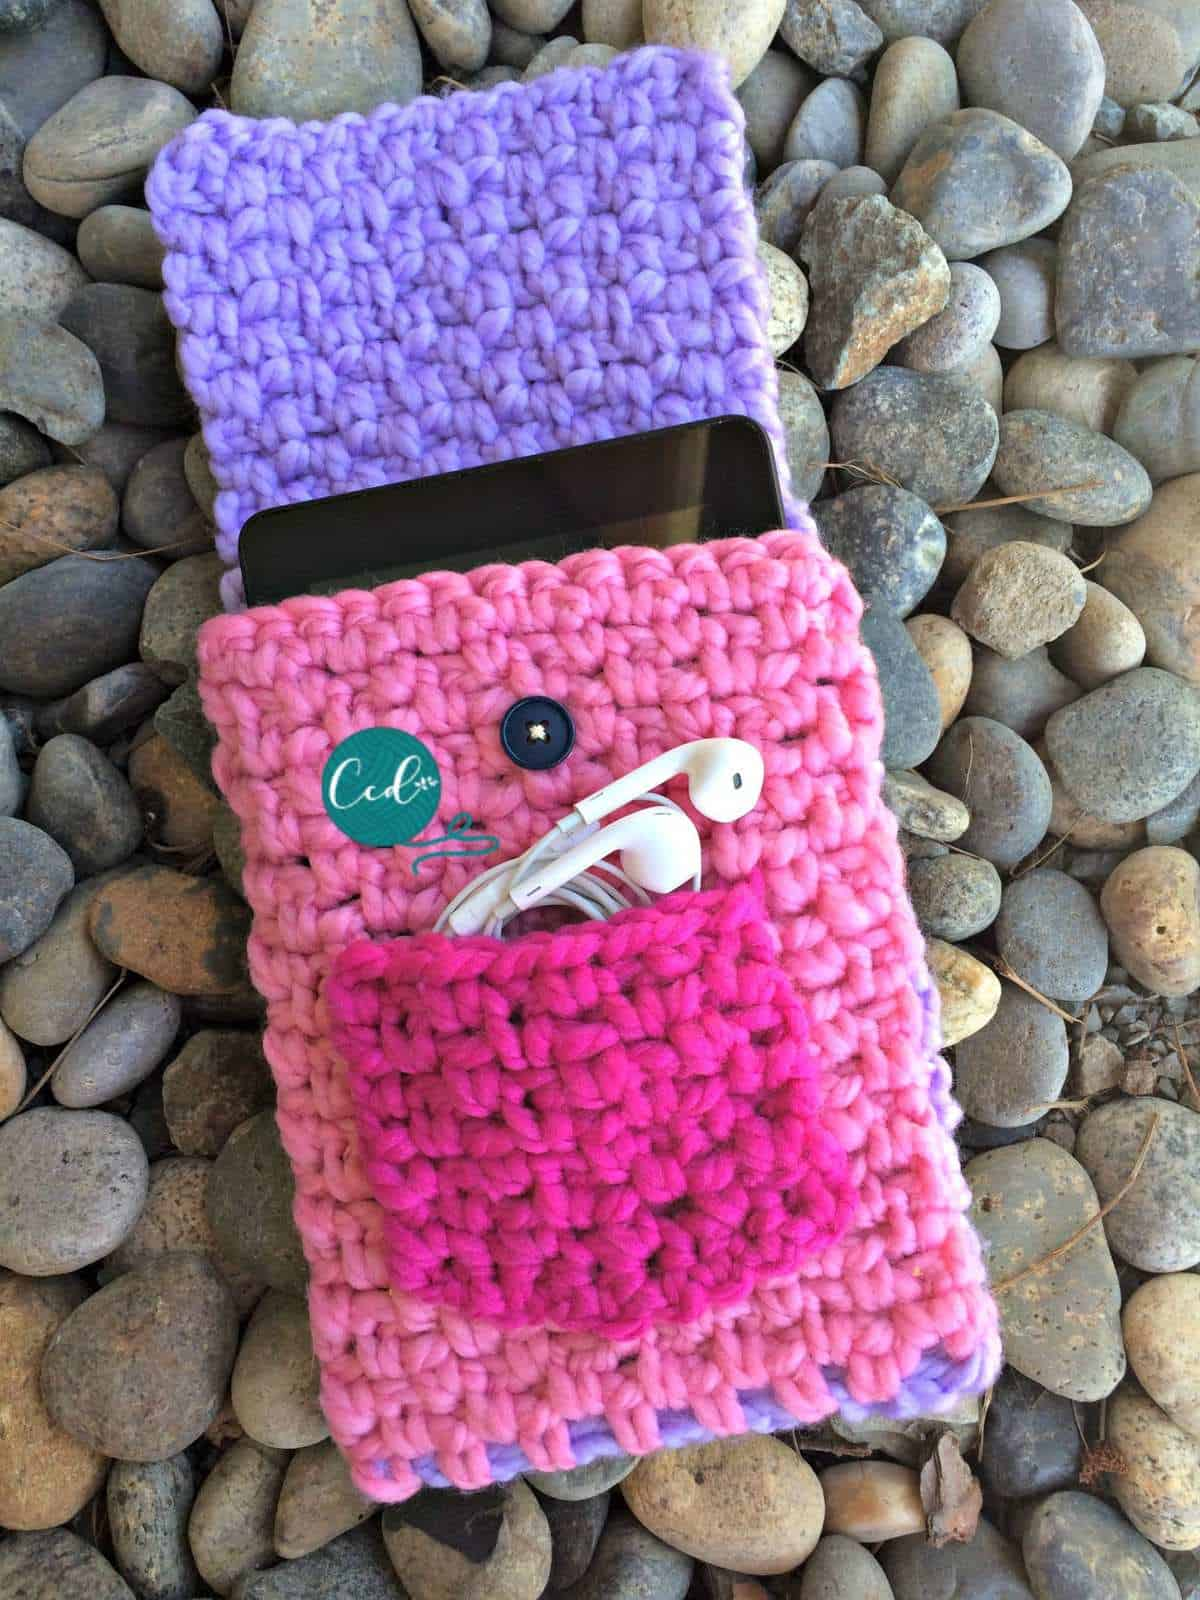 Pink crochet tablet cover with flap open.